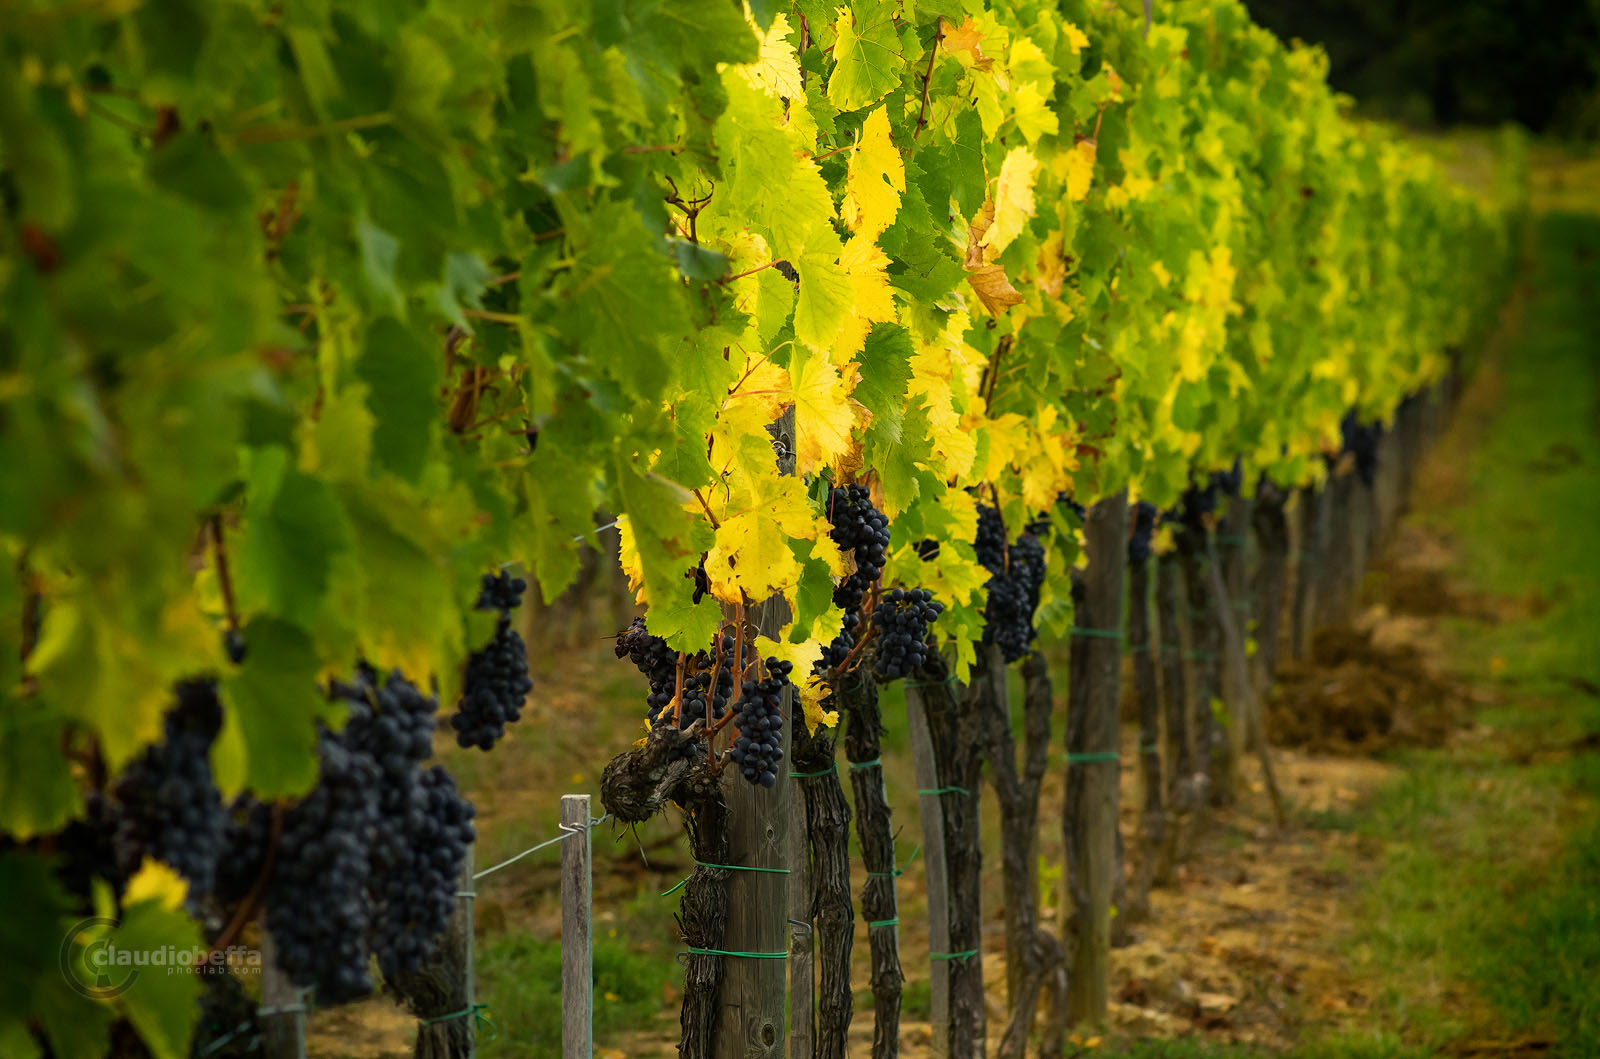 Vines, Vineyard, Grapes, Sangiovese, Tuscany, Toscana, Val d'Orcia, Green, Light, Italy, Italia